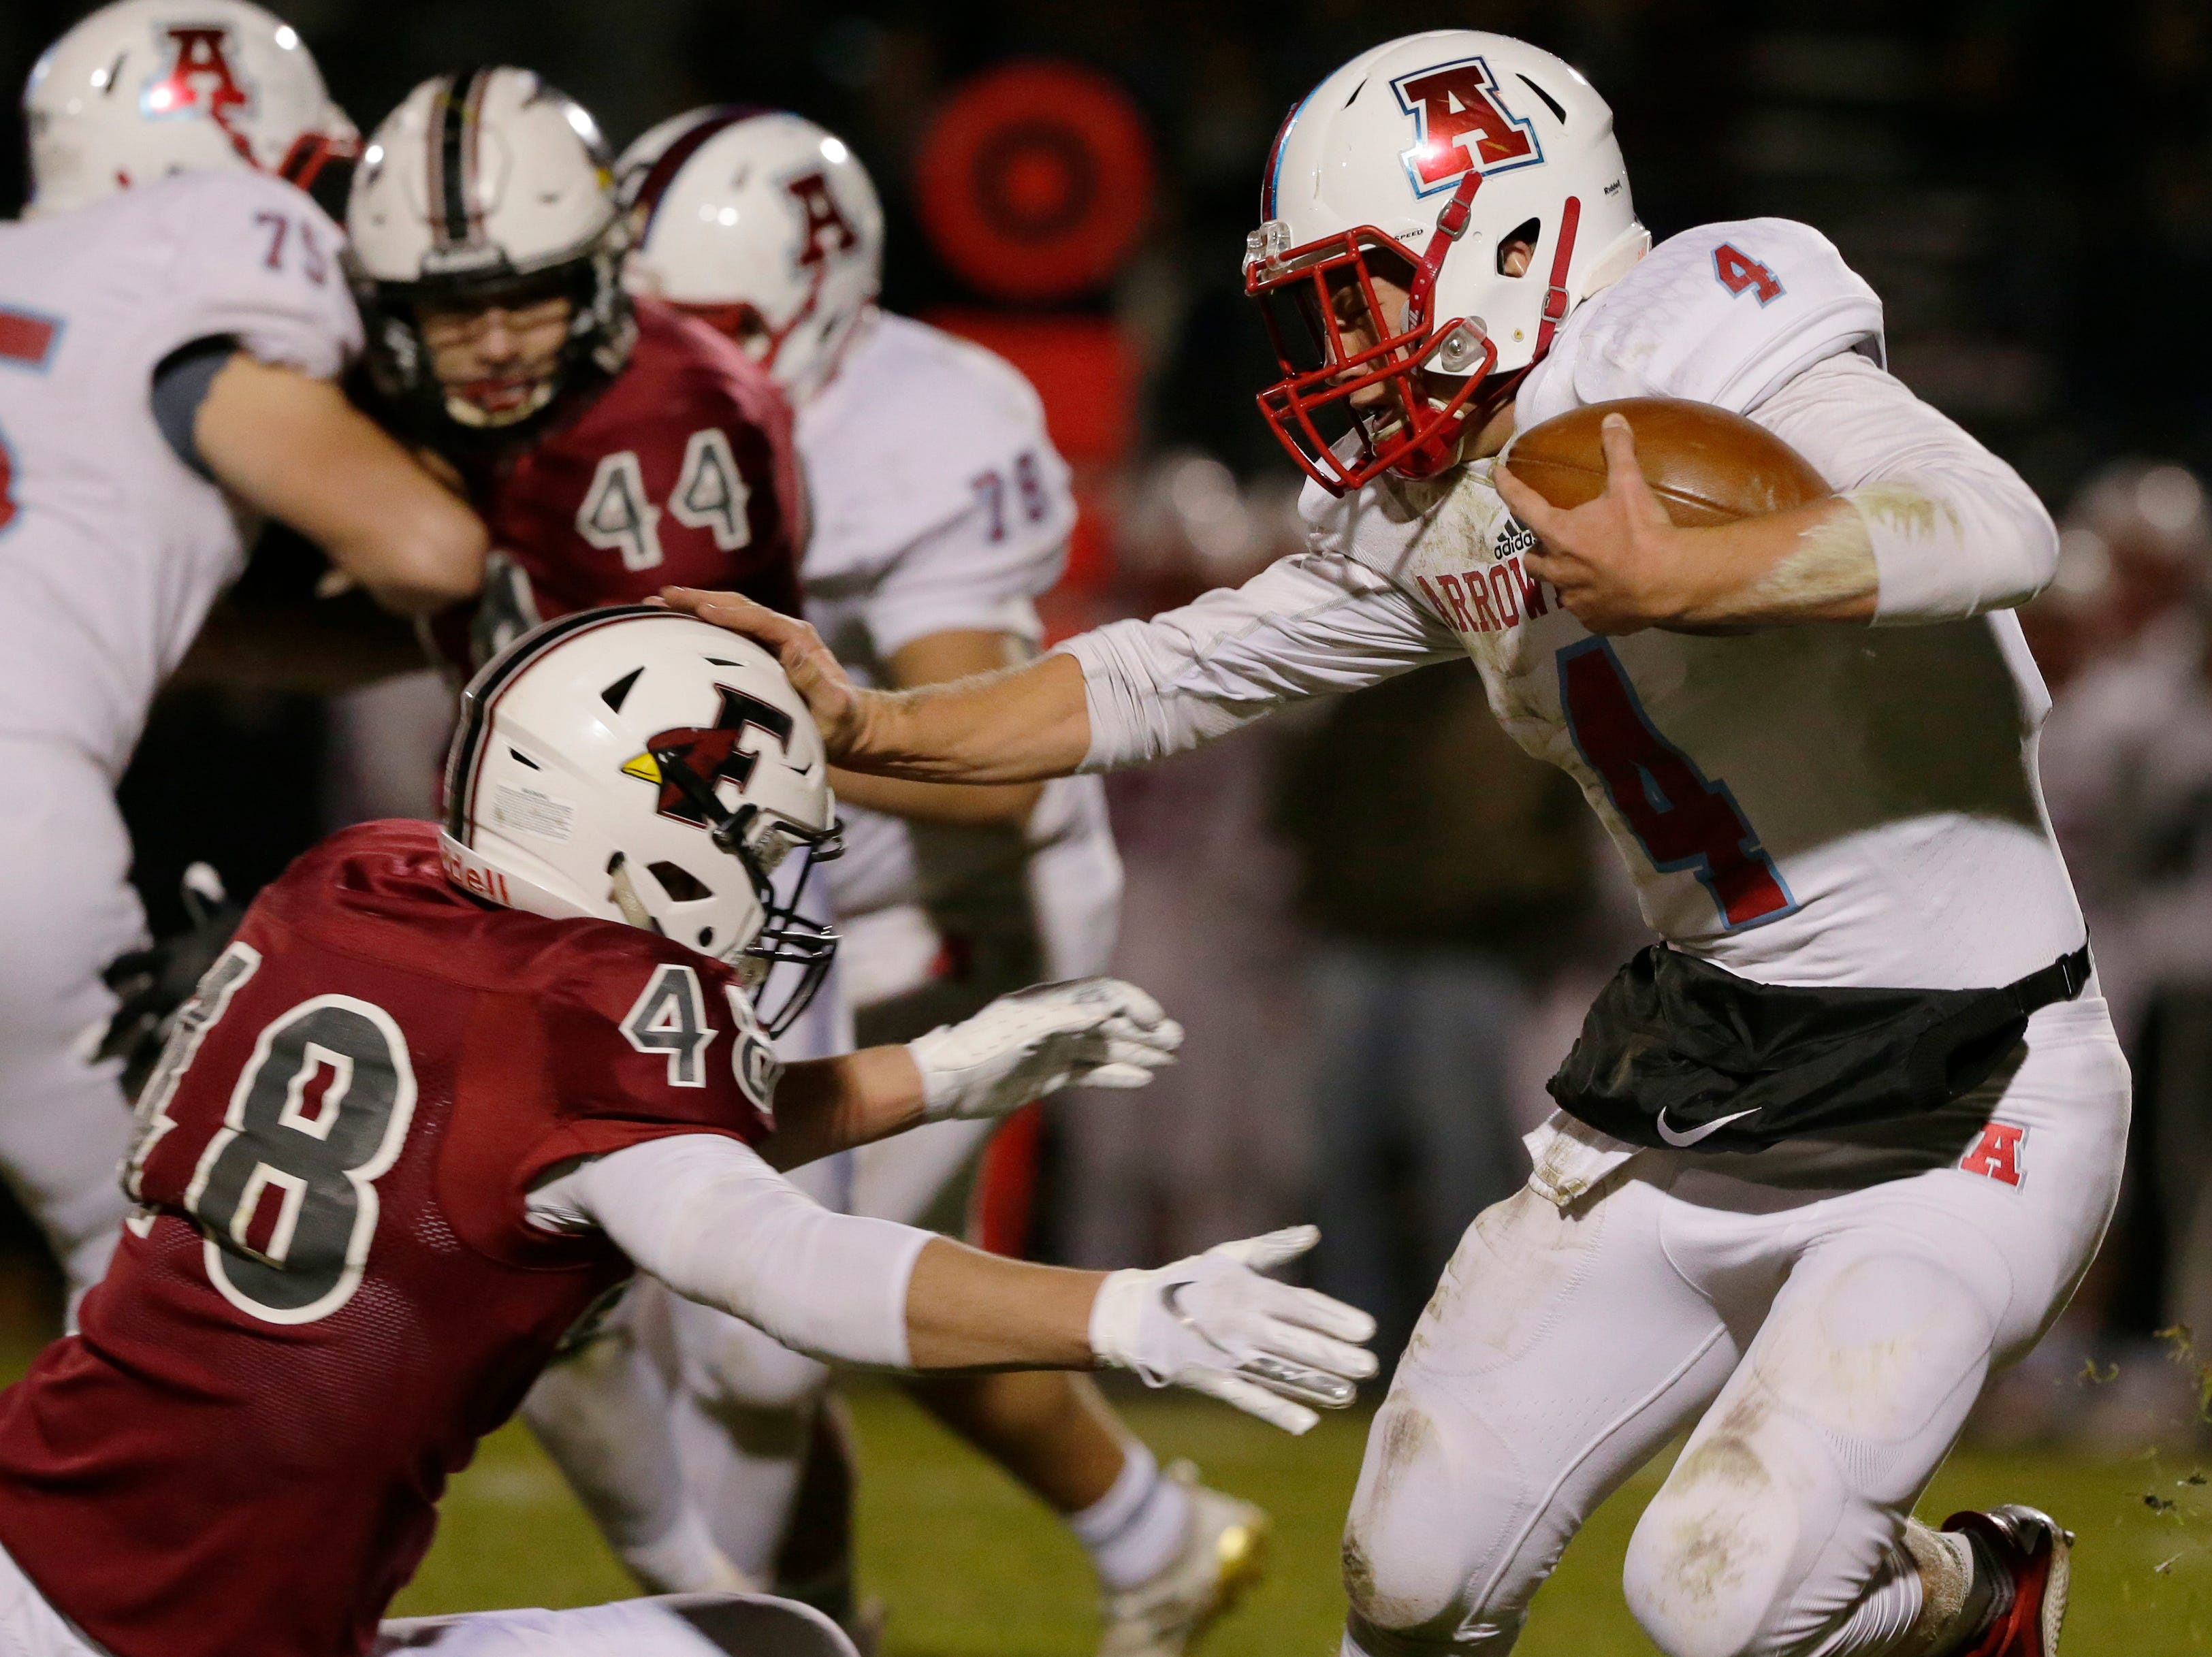 Arrowhead's Nic Wohlfiel runs the ball while stiff arming Fond du Lac's Adam Hopper during their game.  Fond du Lac Cardinals played Arrowhead Warhawks in WIAA football playoff sectionals, Friday, Oct. 26, 2018, at Fruth Field in Fond du Lac.  Fond du Lac won 28 - 22.Joe Sienkiewicz/USA Today NETWORK-Wisconsin